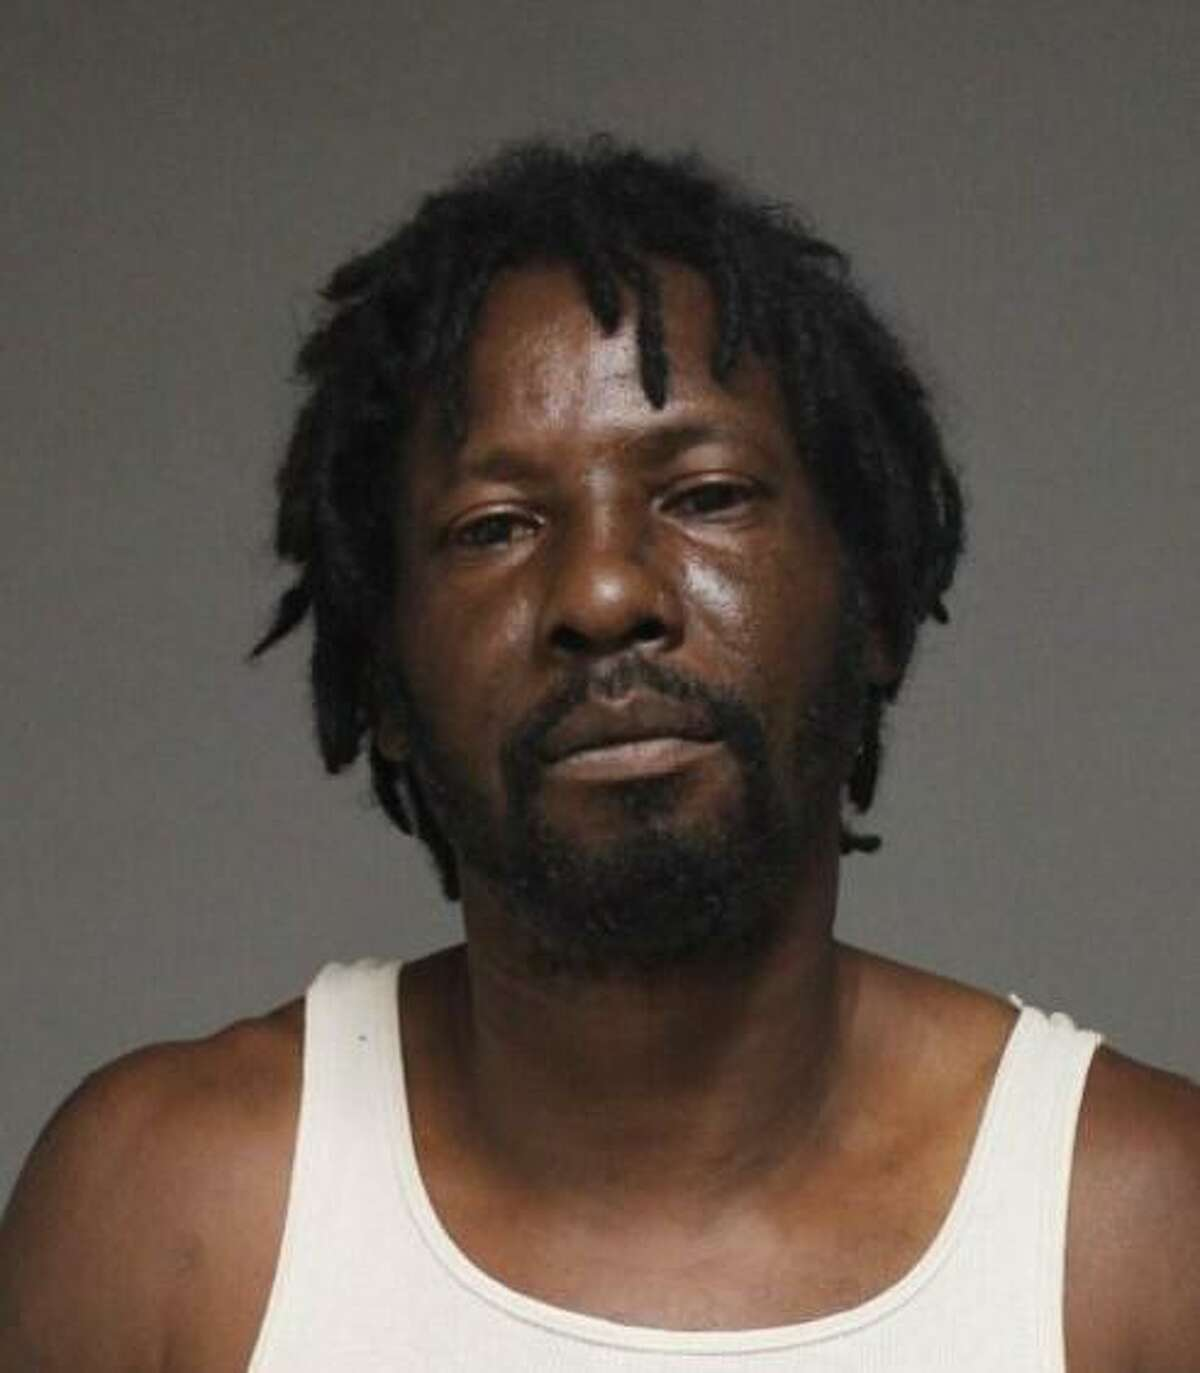 William Brunson, a 49-year-old Fairfield resident, was arrested and charged for allegedly threatening his girlfriend at her place of work.